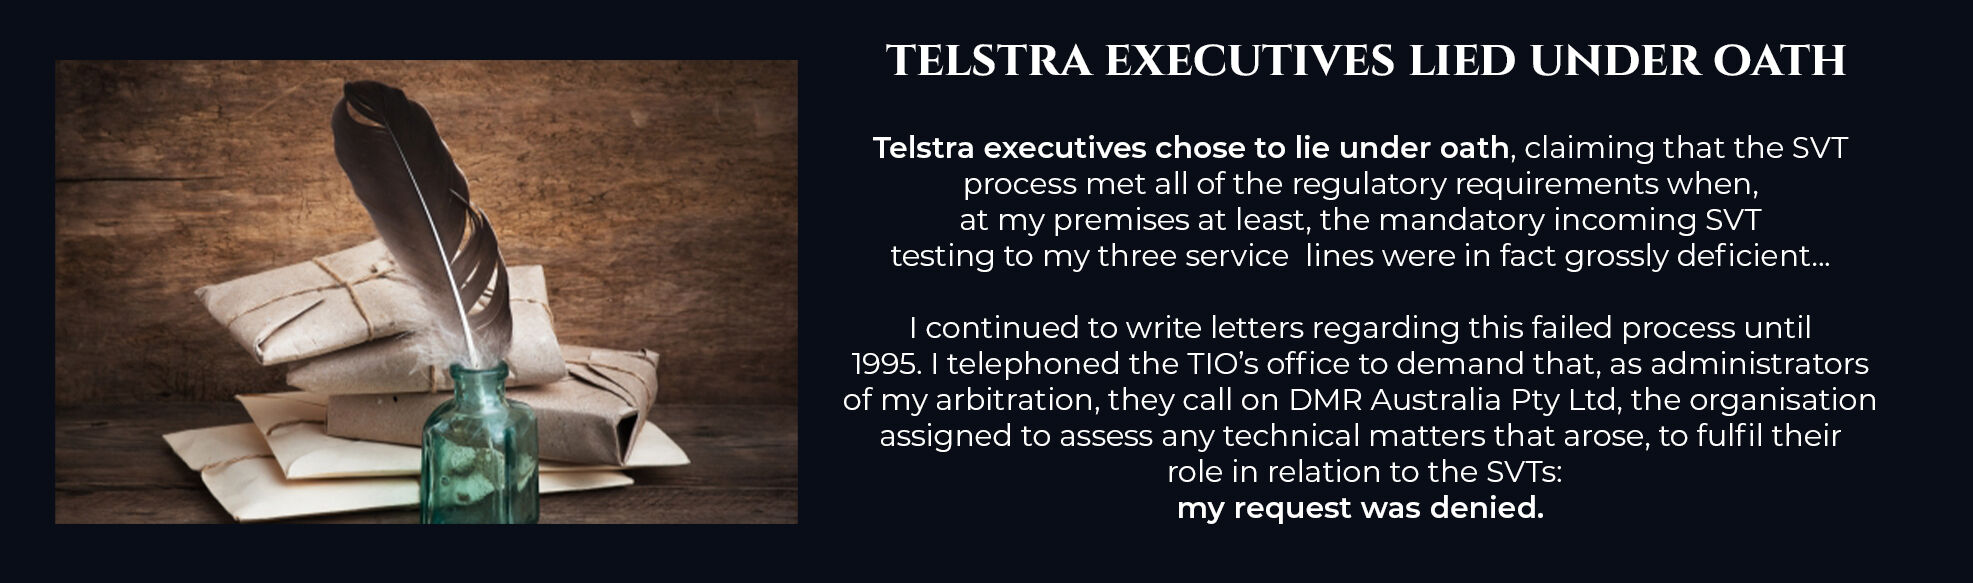 Absent Justice - Telstra Executives Lied under oath